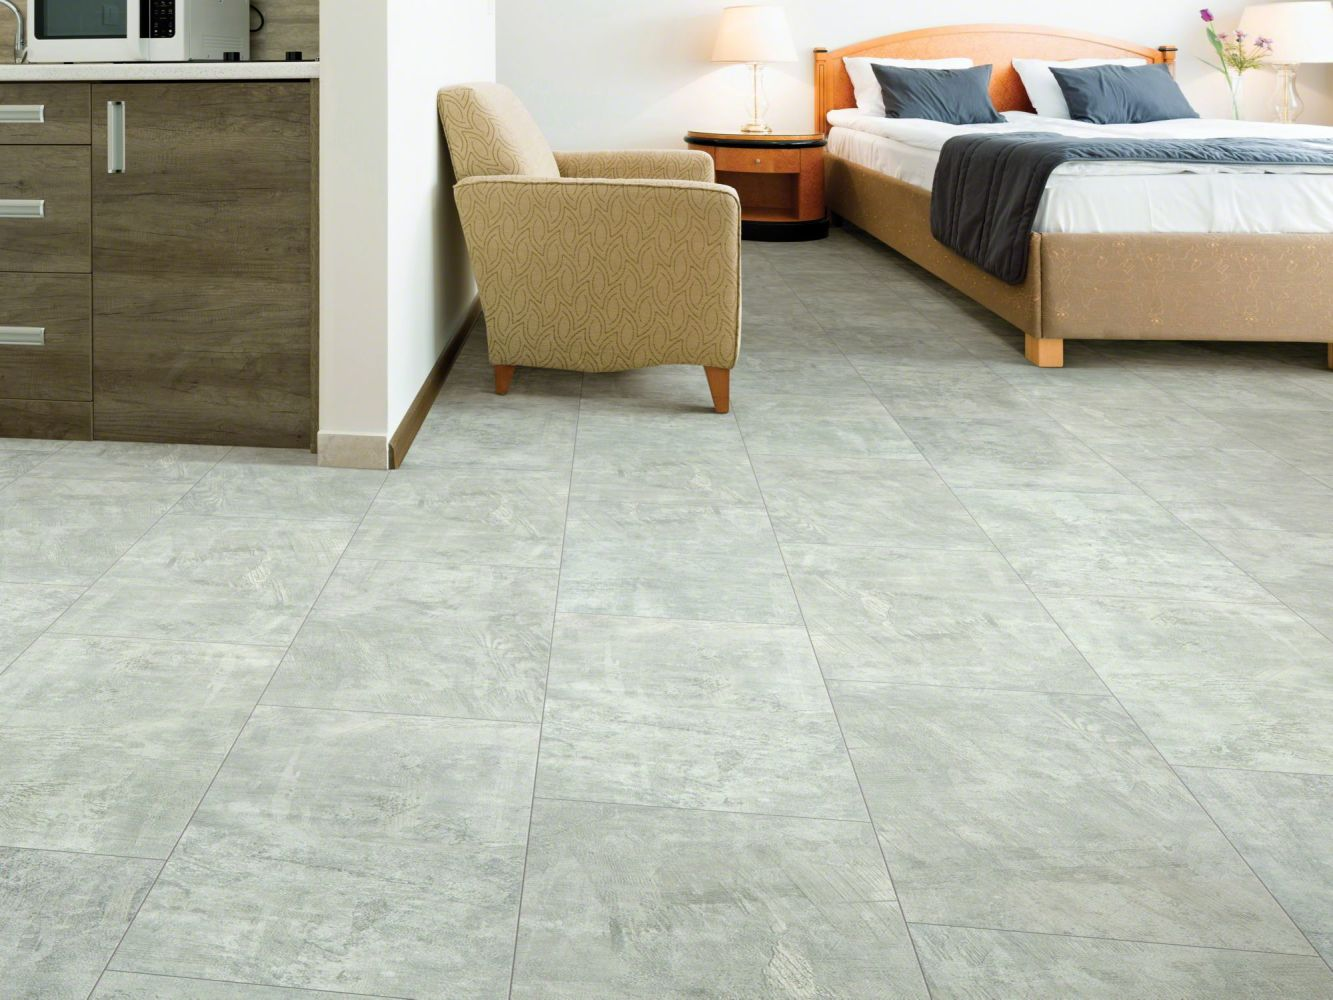 Shaw Floors Resilient Property Solutions Mineralite 720c Plus Graphite 05001_522RG